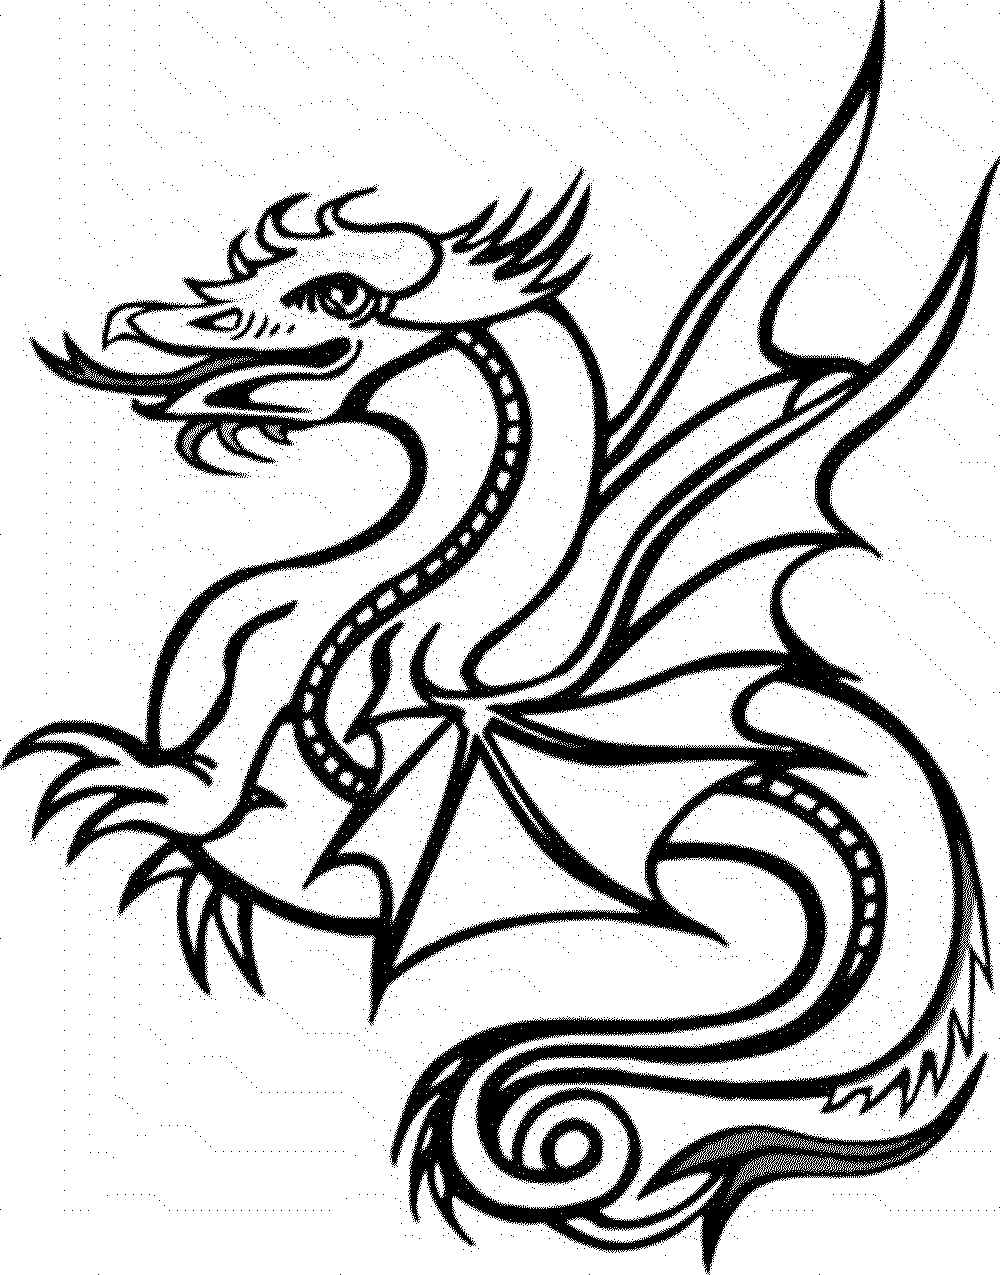 dragon pictures to color and print color the dragon coloring pages in websites print to pictures dragon and color